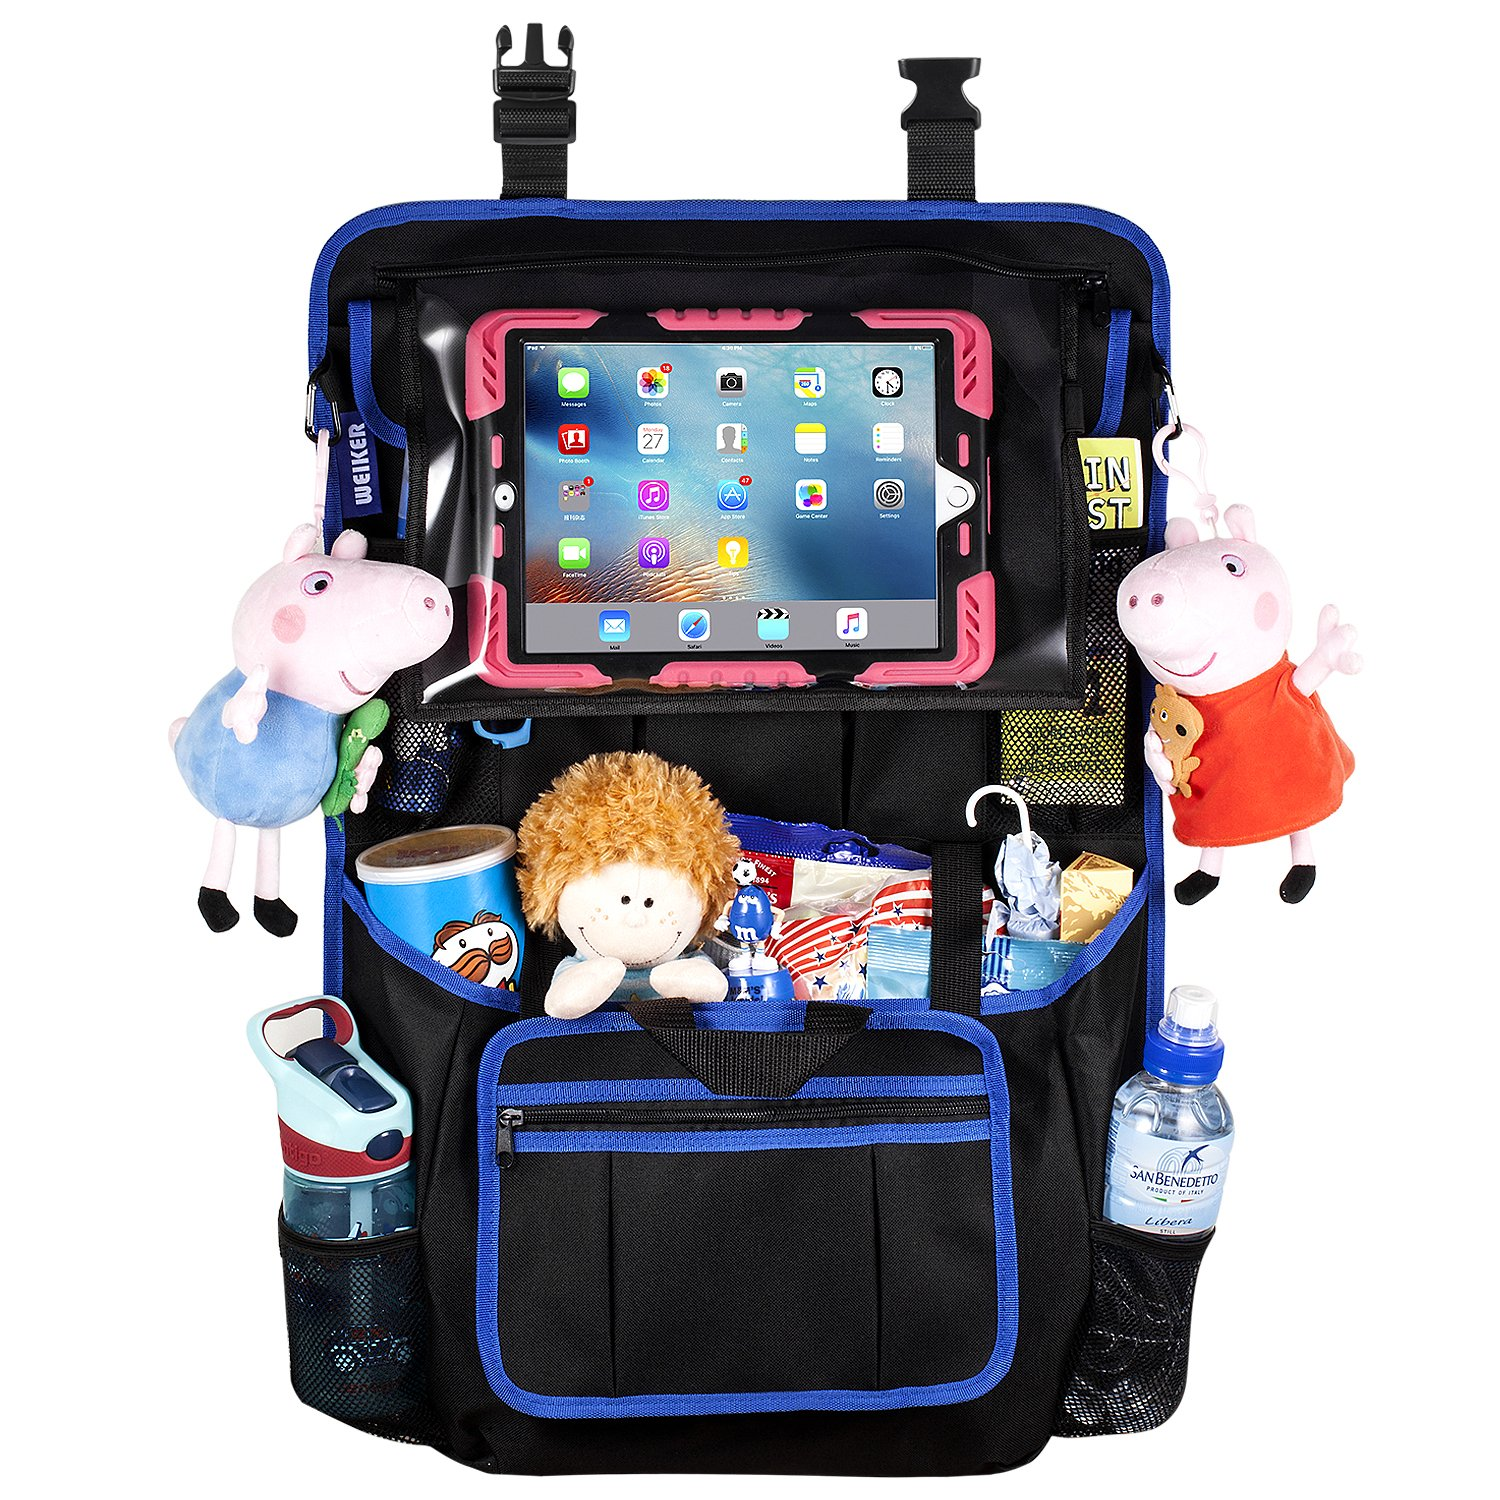 Car Back Seat Organizer Protector - Travel Accessories Large Size Toy Storage Bag with 12.9' Tablet Holder for Kids, Backseat Cover, Kick Mats by WEIKER (BLACK - 2 PACKS) JXN-WA-02